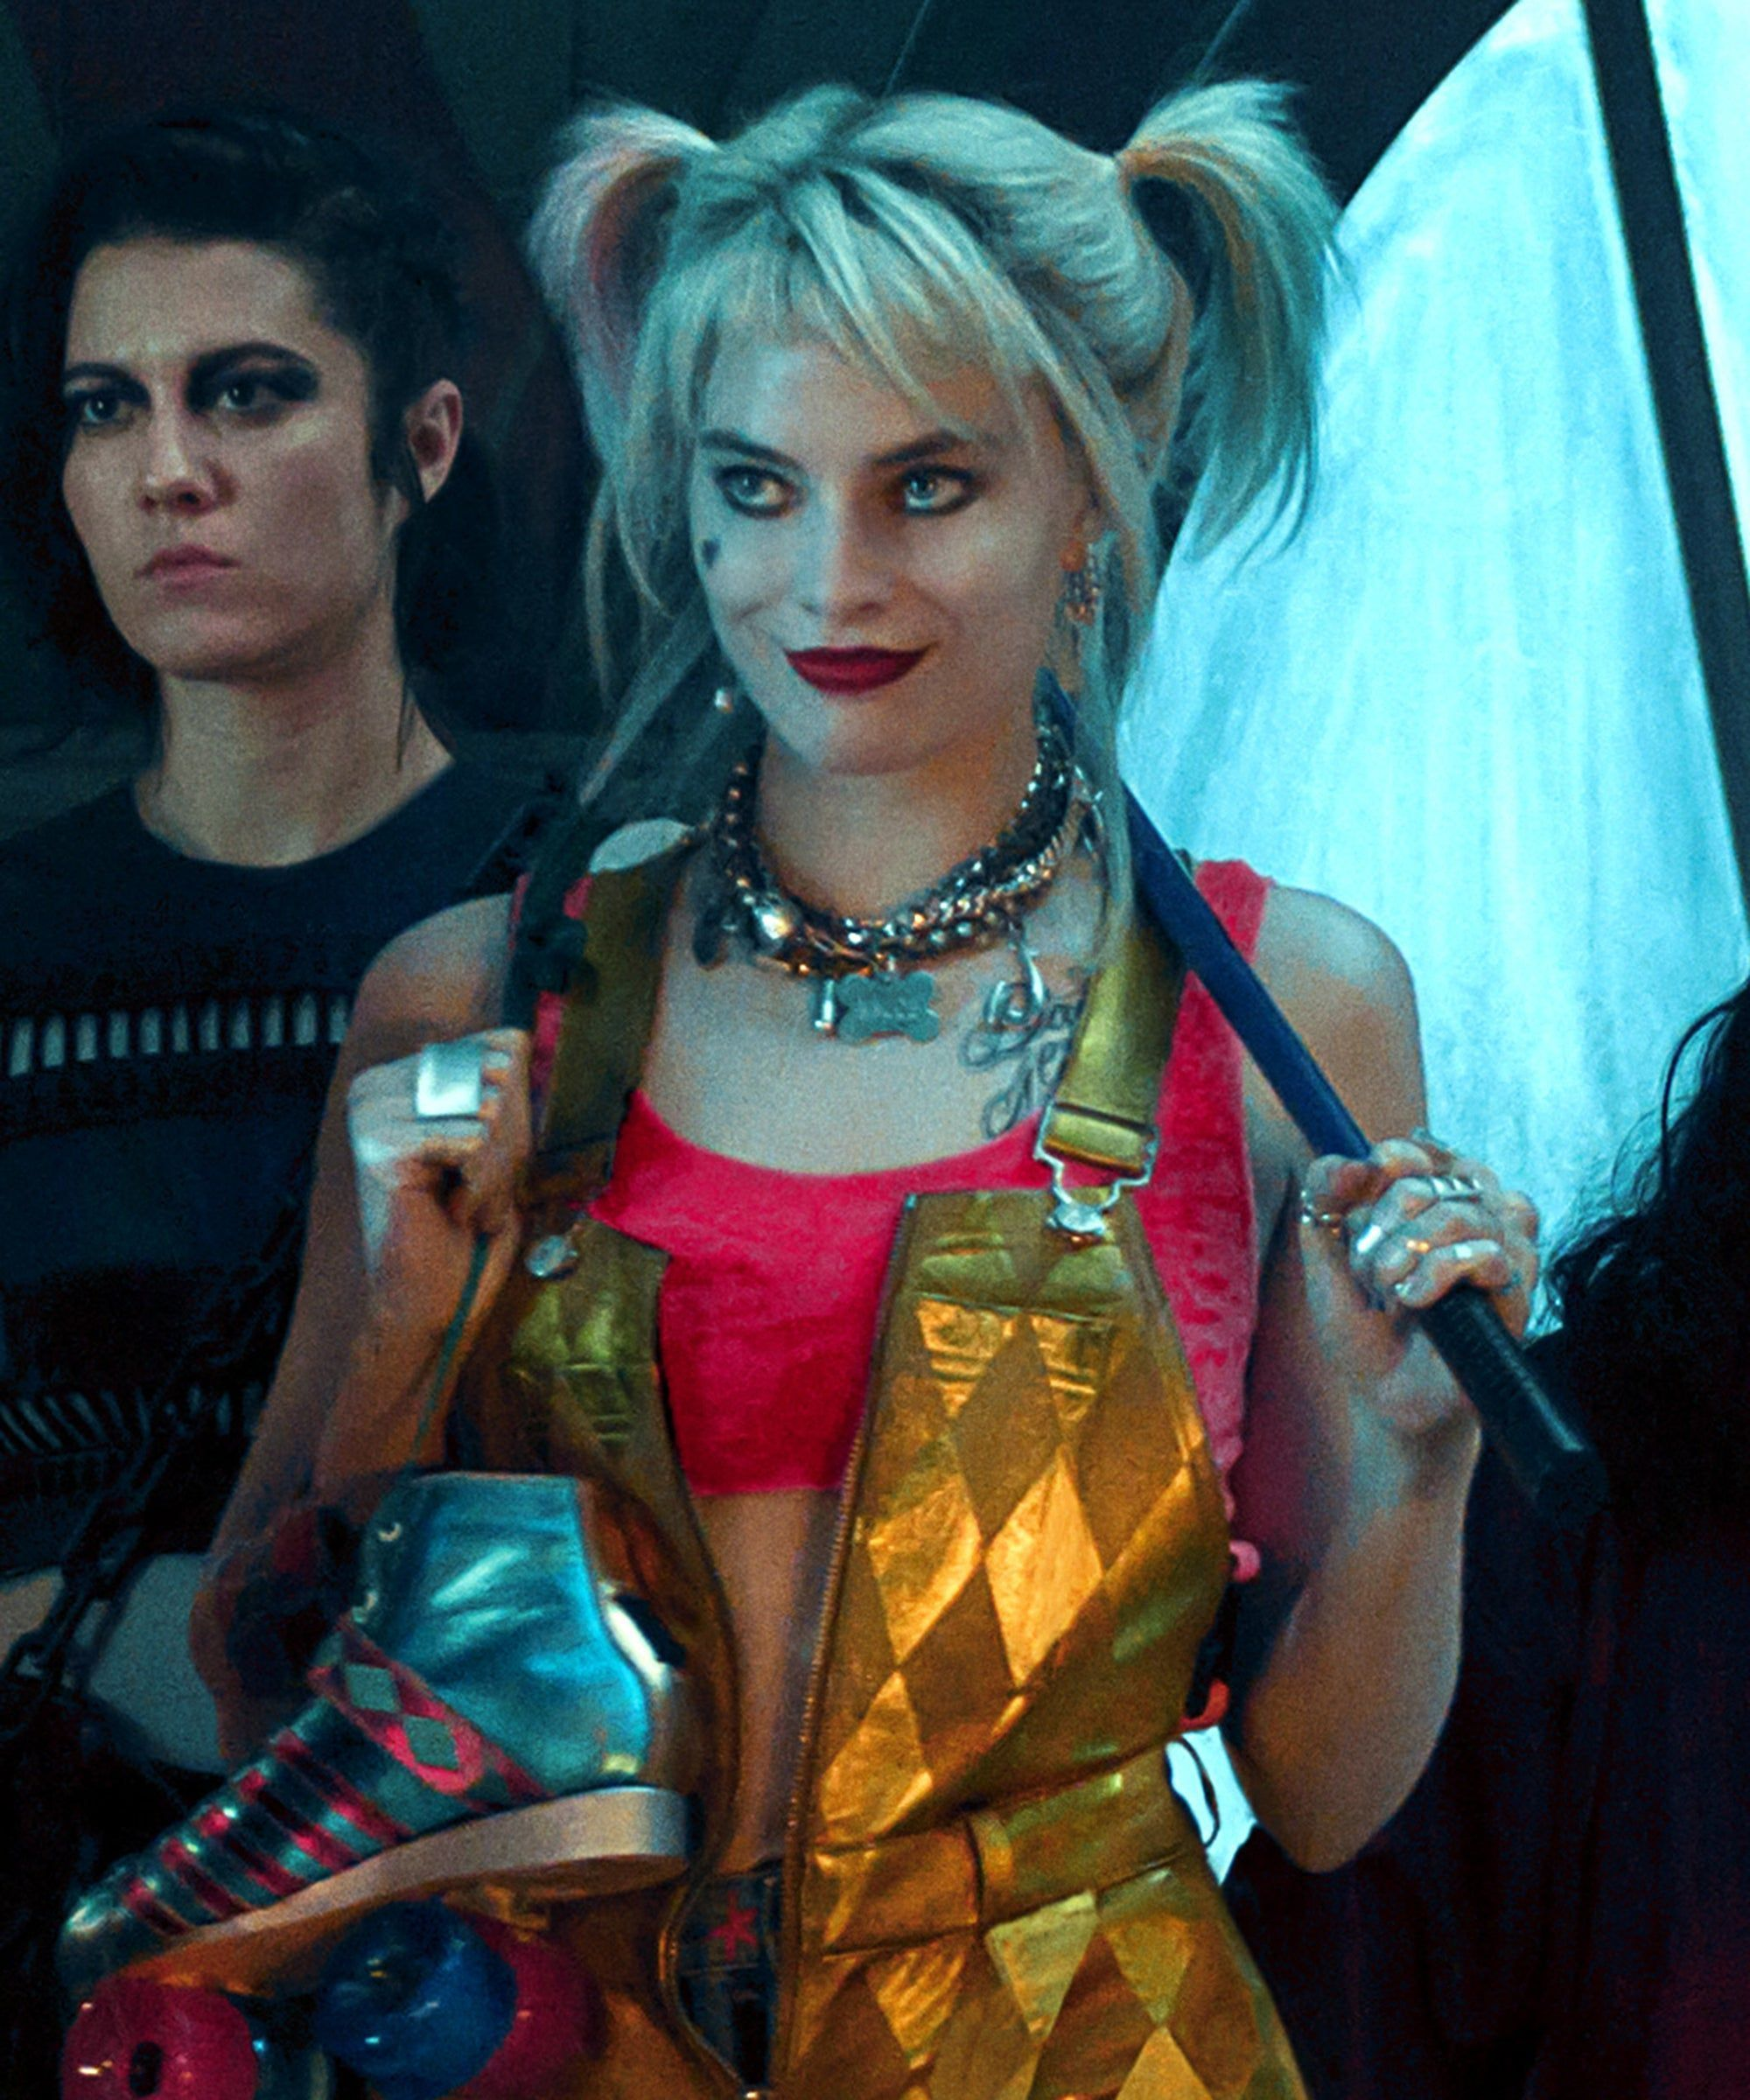 Épinglé sur birds of prey 2020 film streaming vf complet